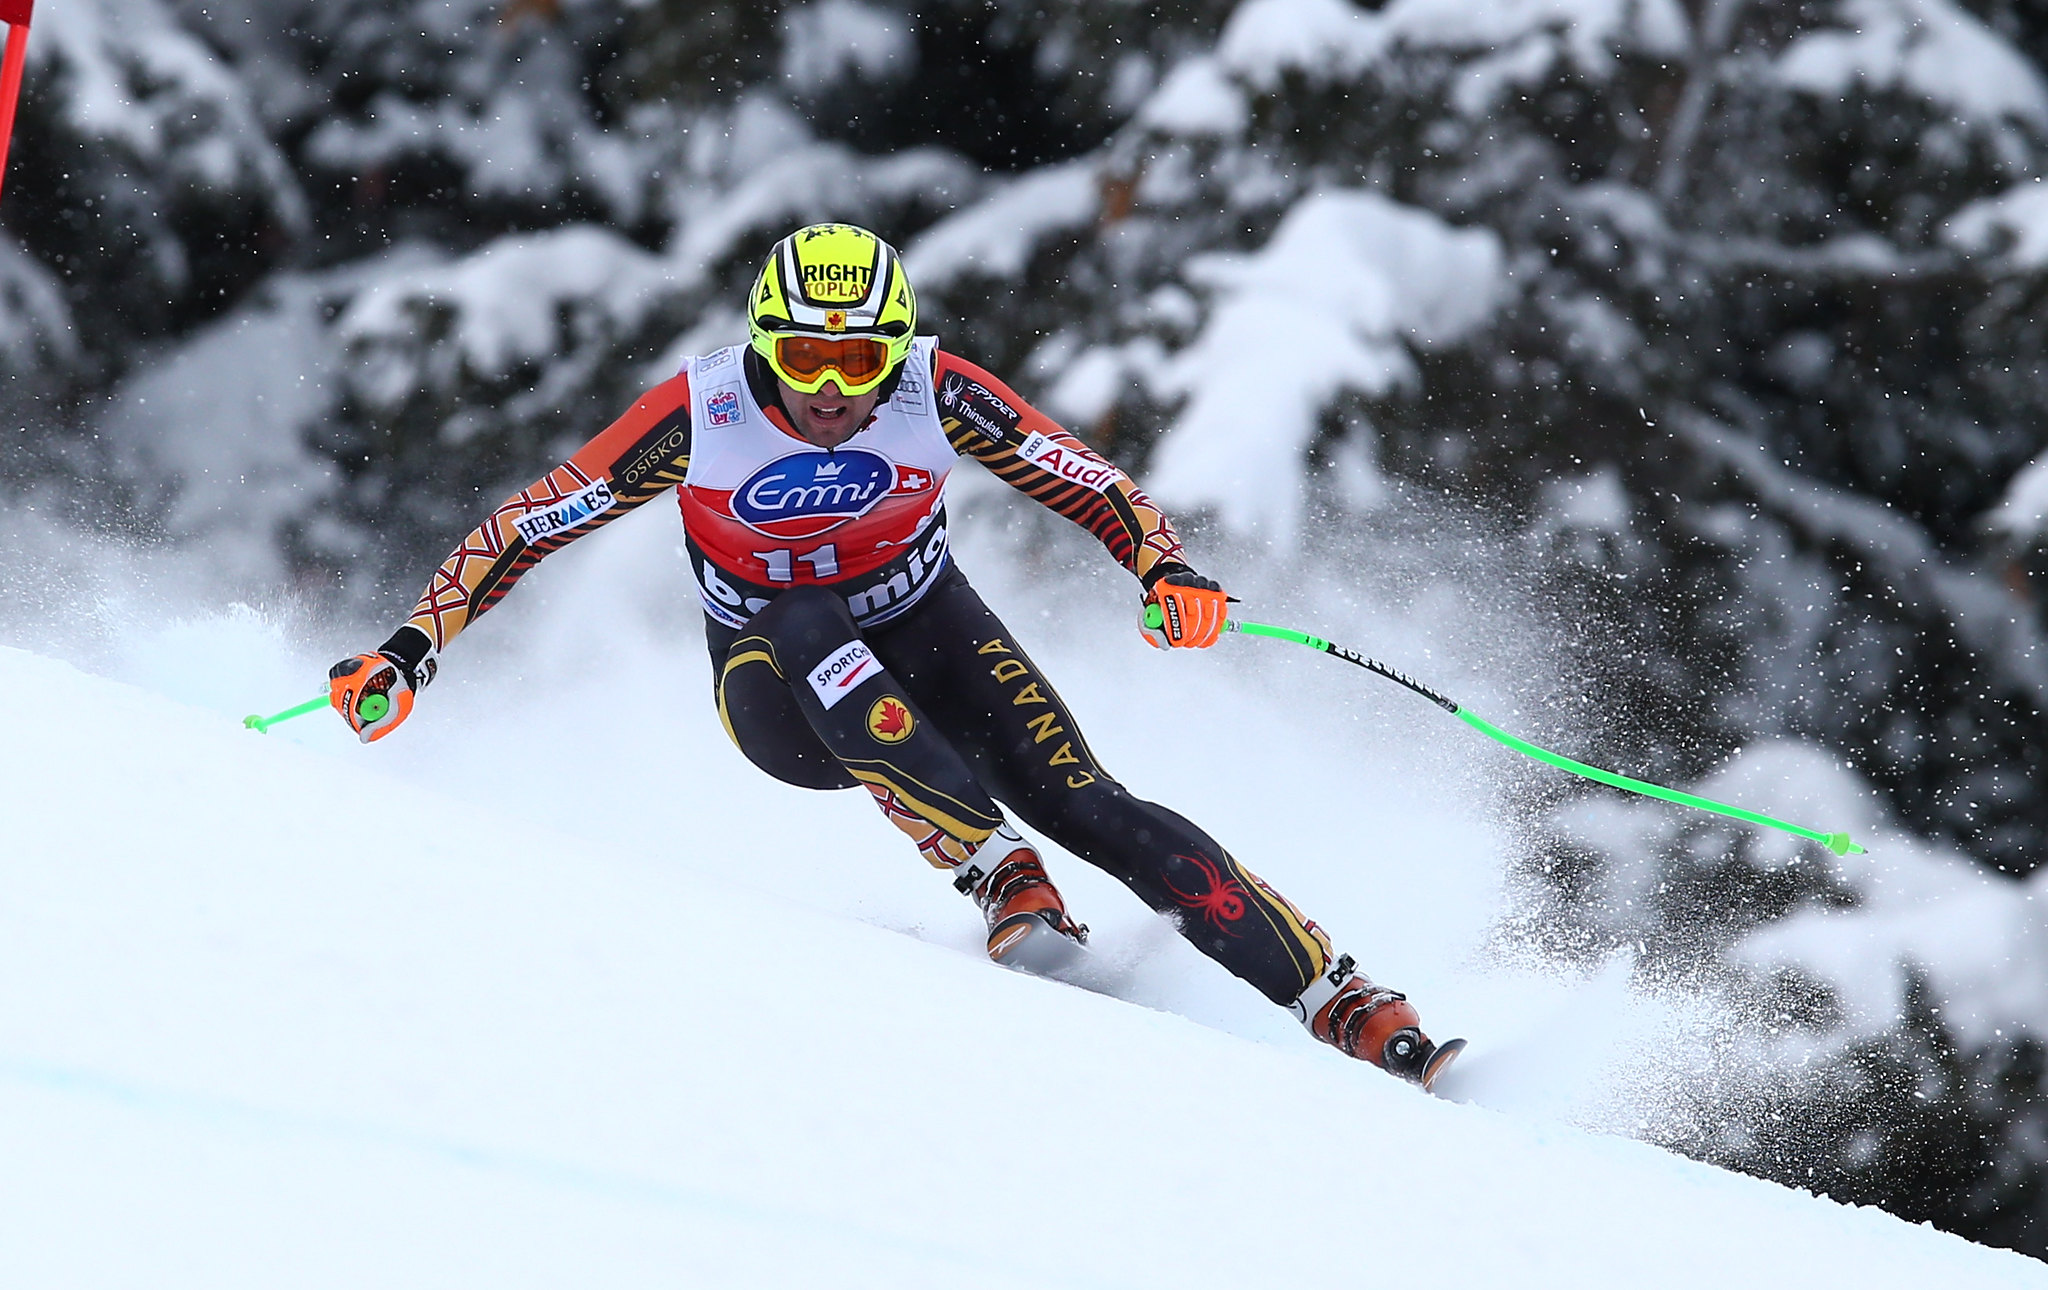 Osborne-Paradis speeds down the mountain during the downhill in Bormio, ITA